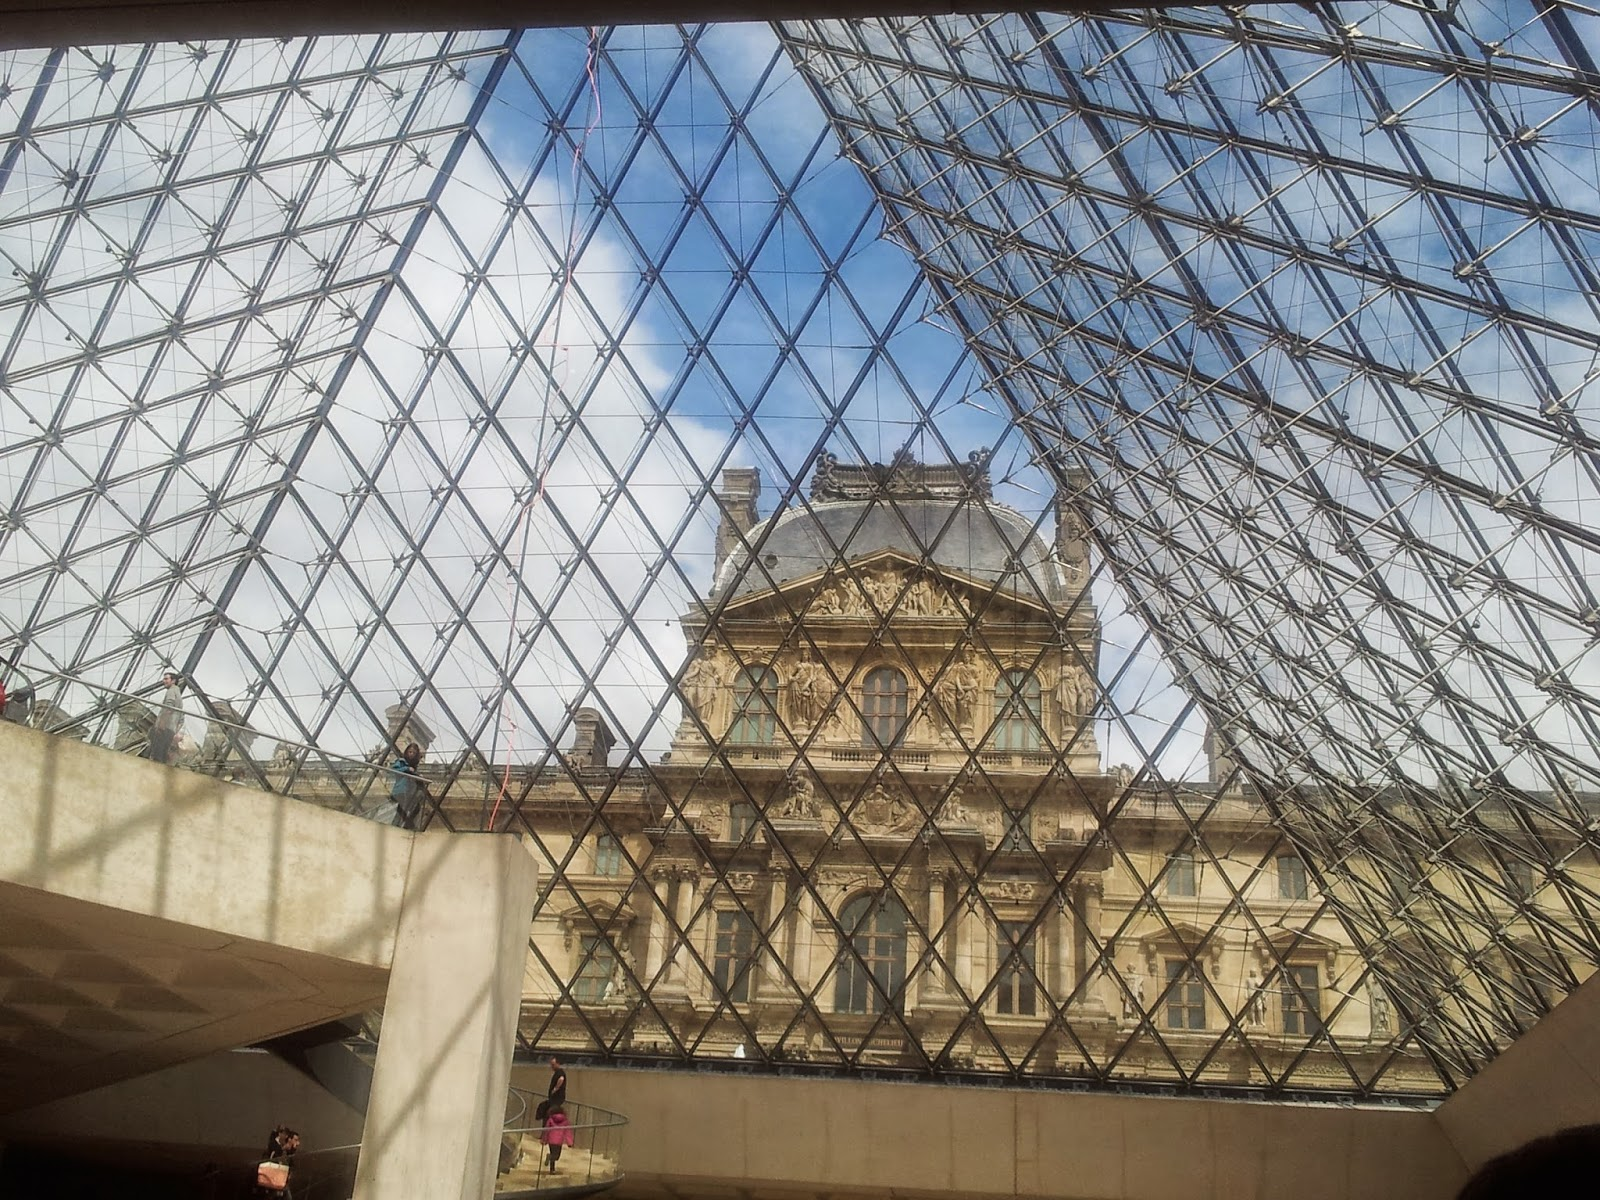 Looking out under the glass at the Louvre, Paris.